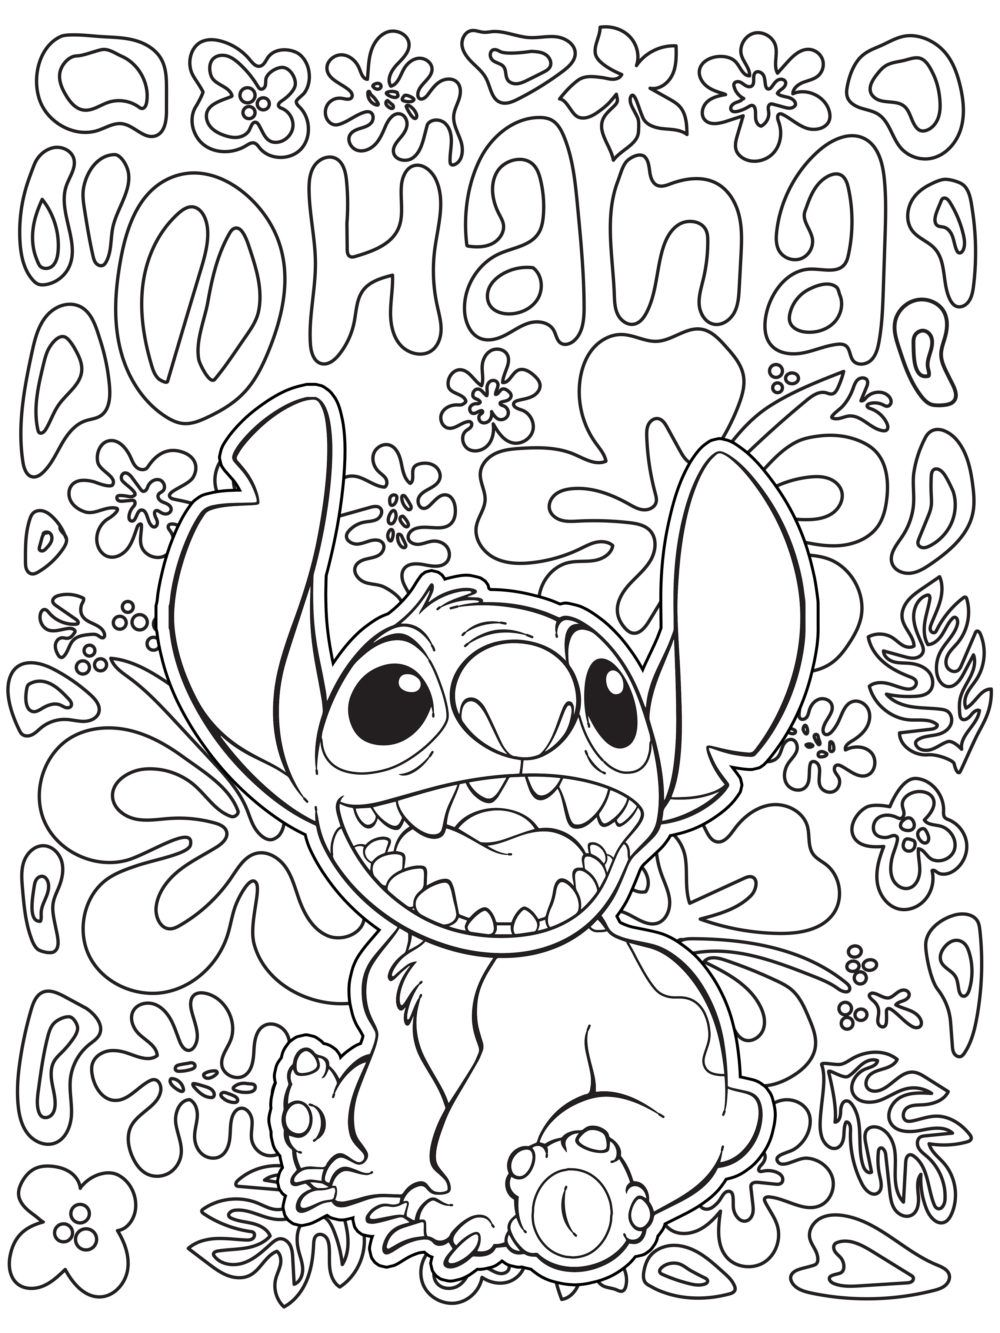 disney coloring pages # 2